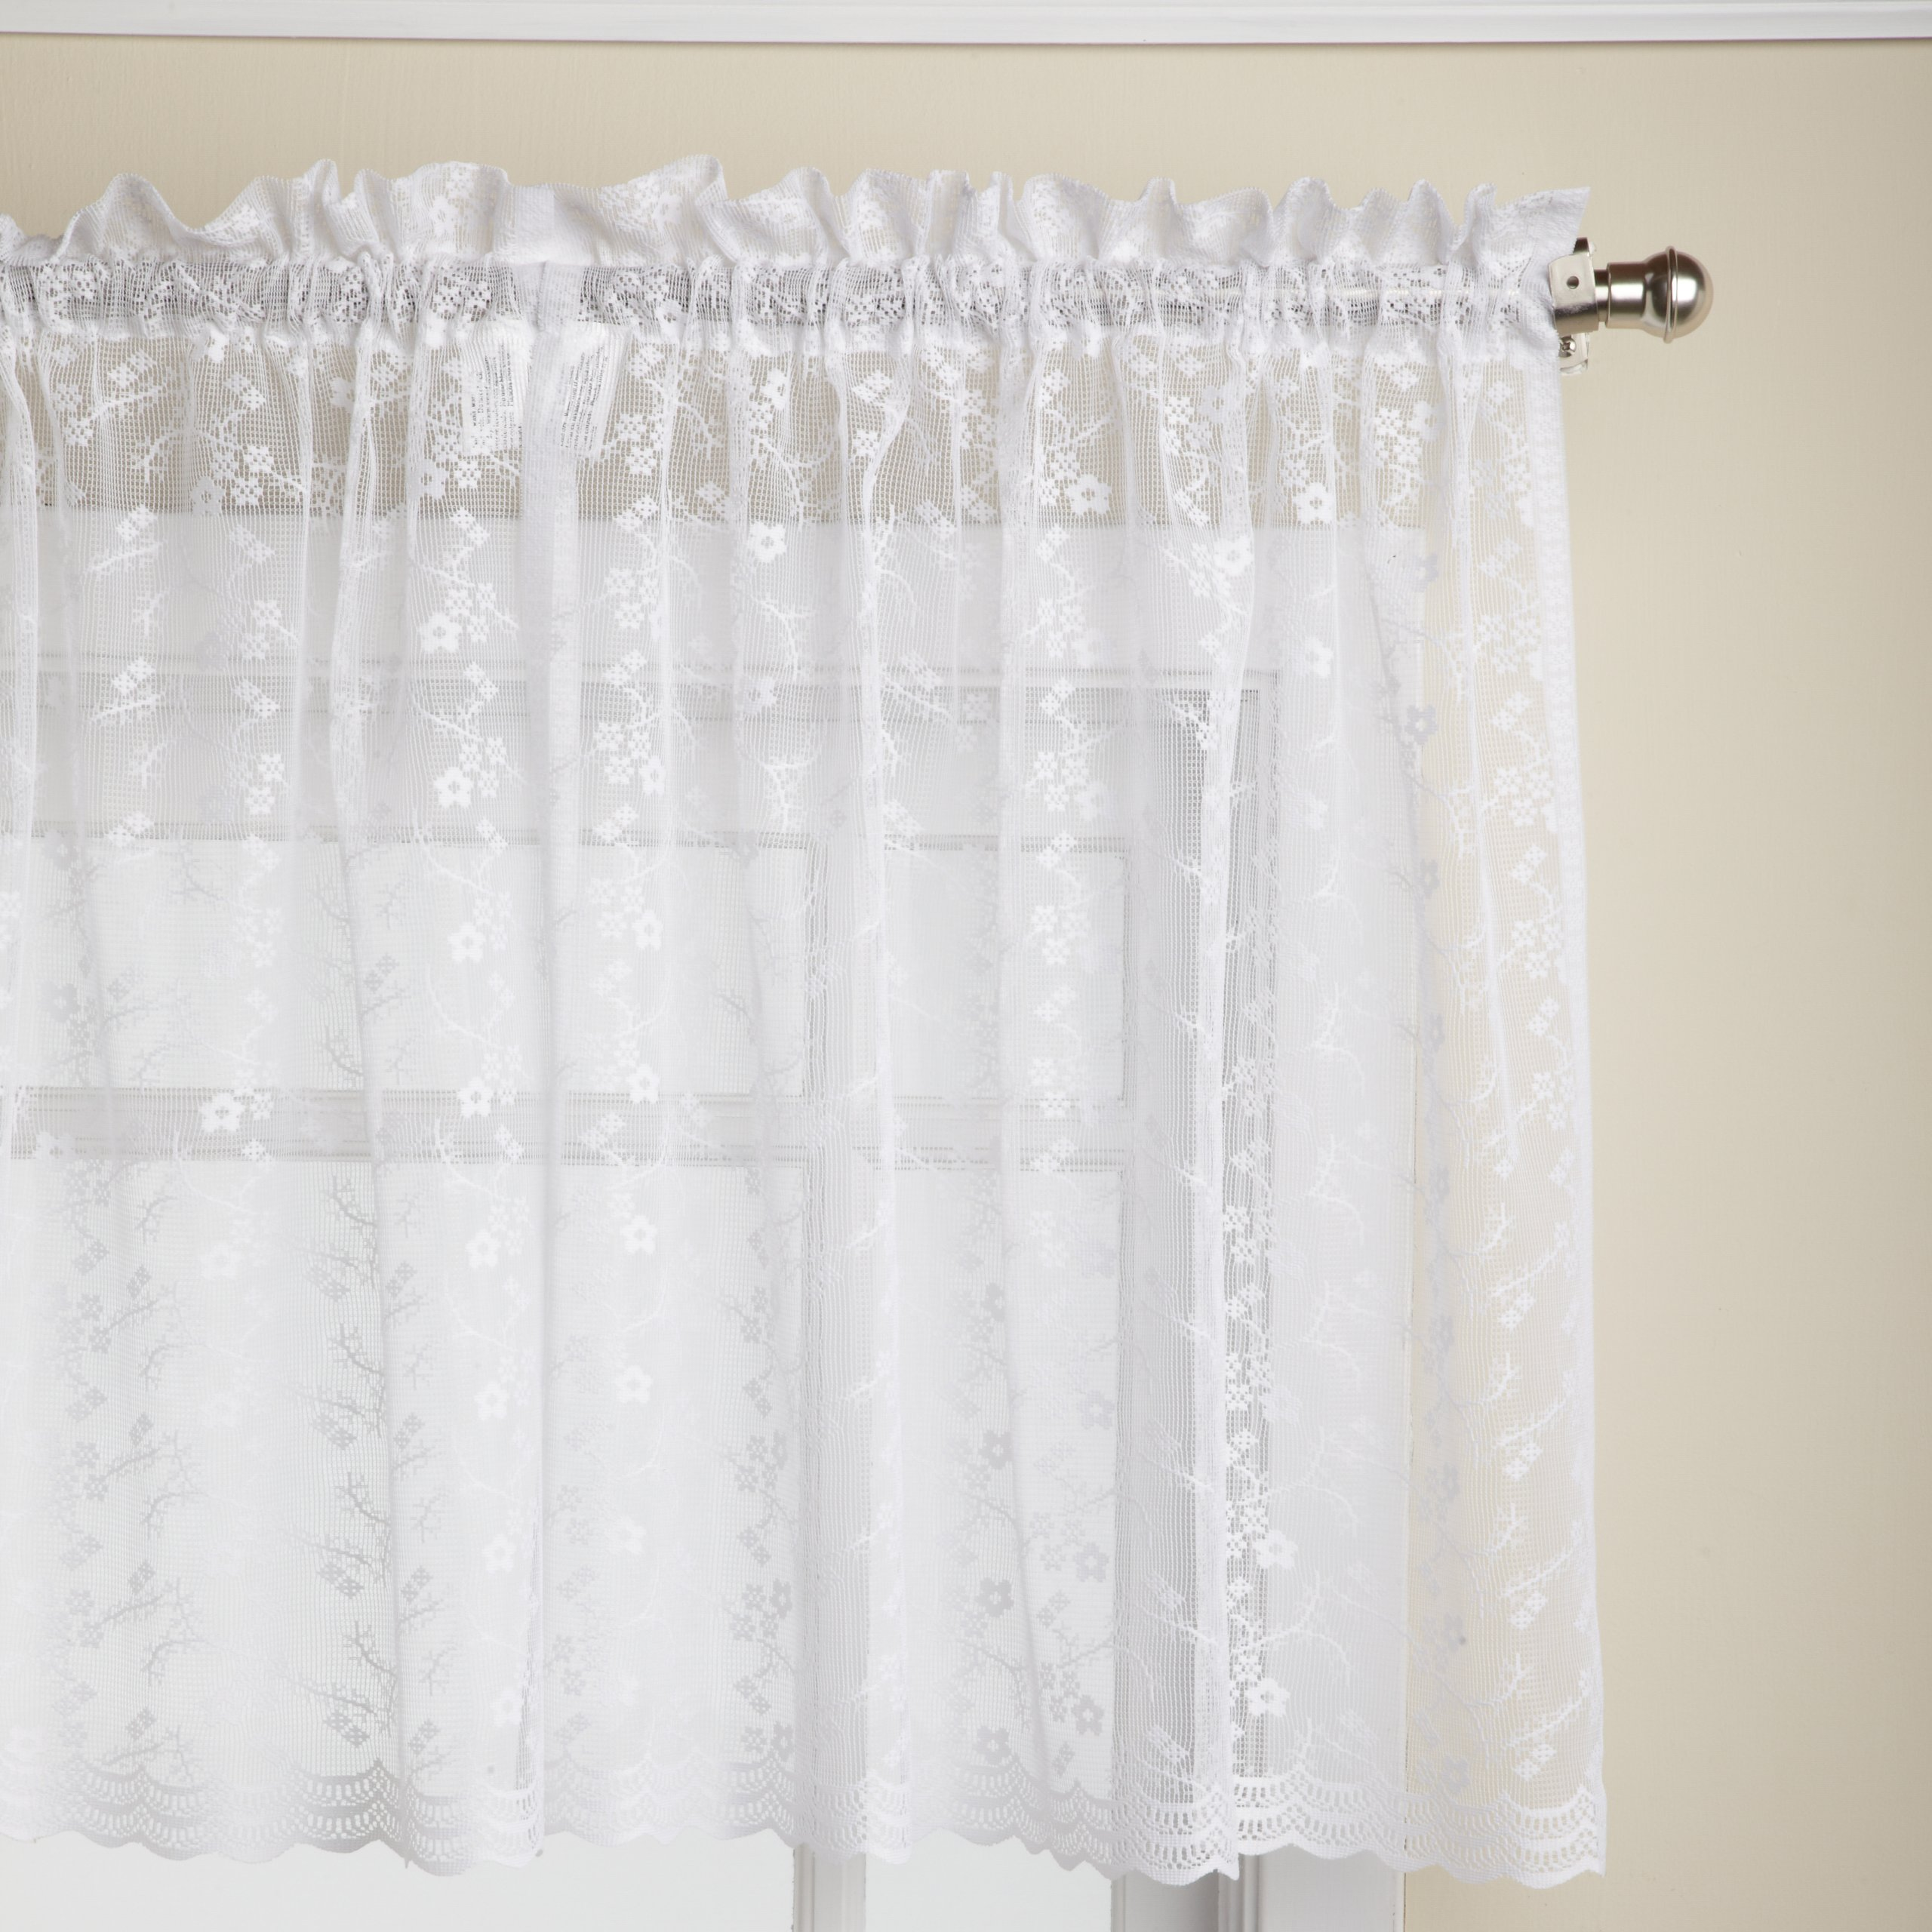 Linen Lorraine Home Fashions: Sheer Cafe Curtains: Amazon.com